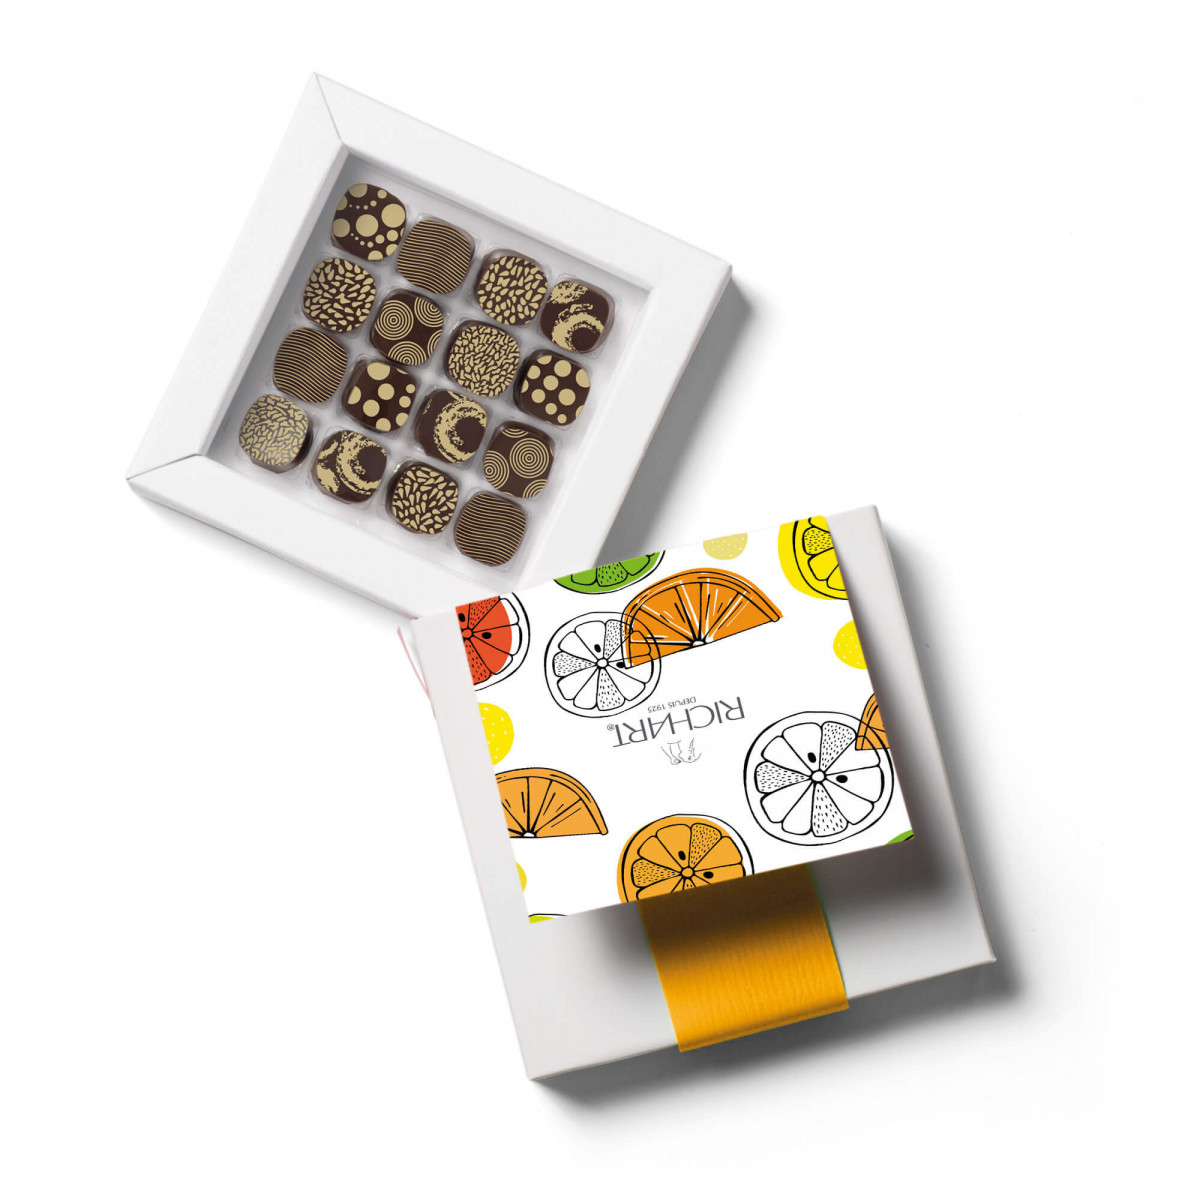 Petits RICHART Citrus Box of 16 filled chocolates